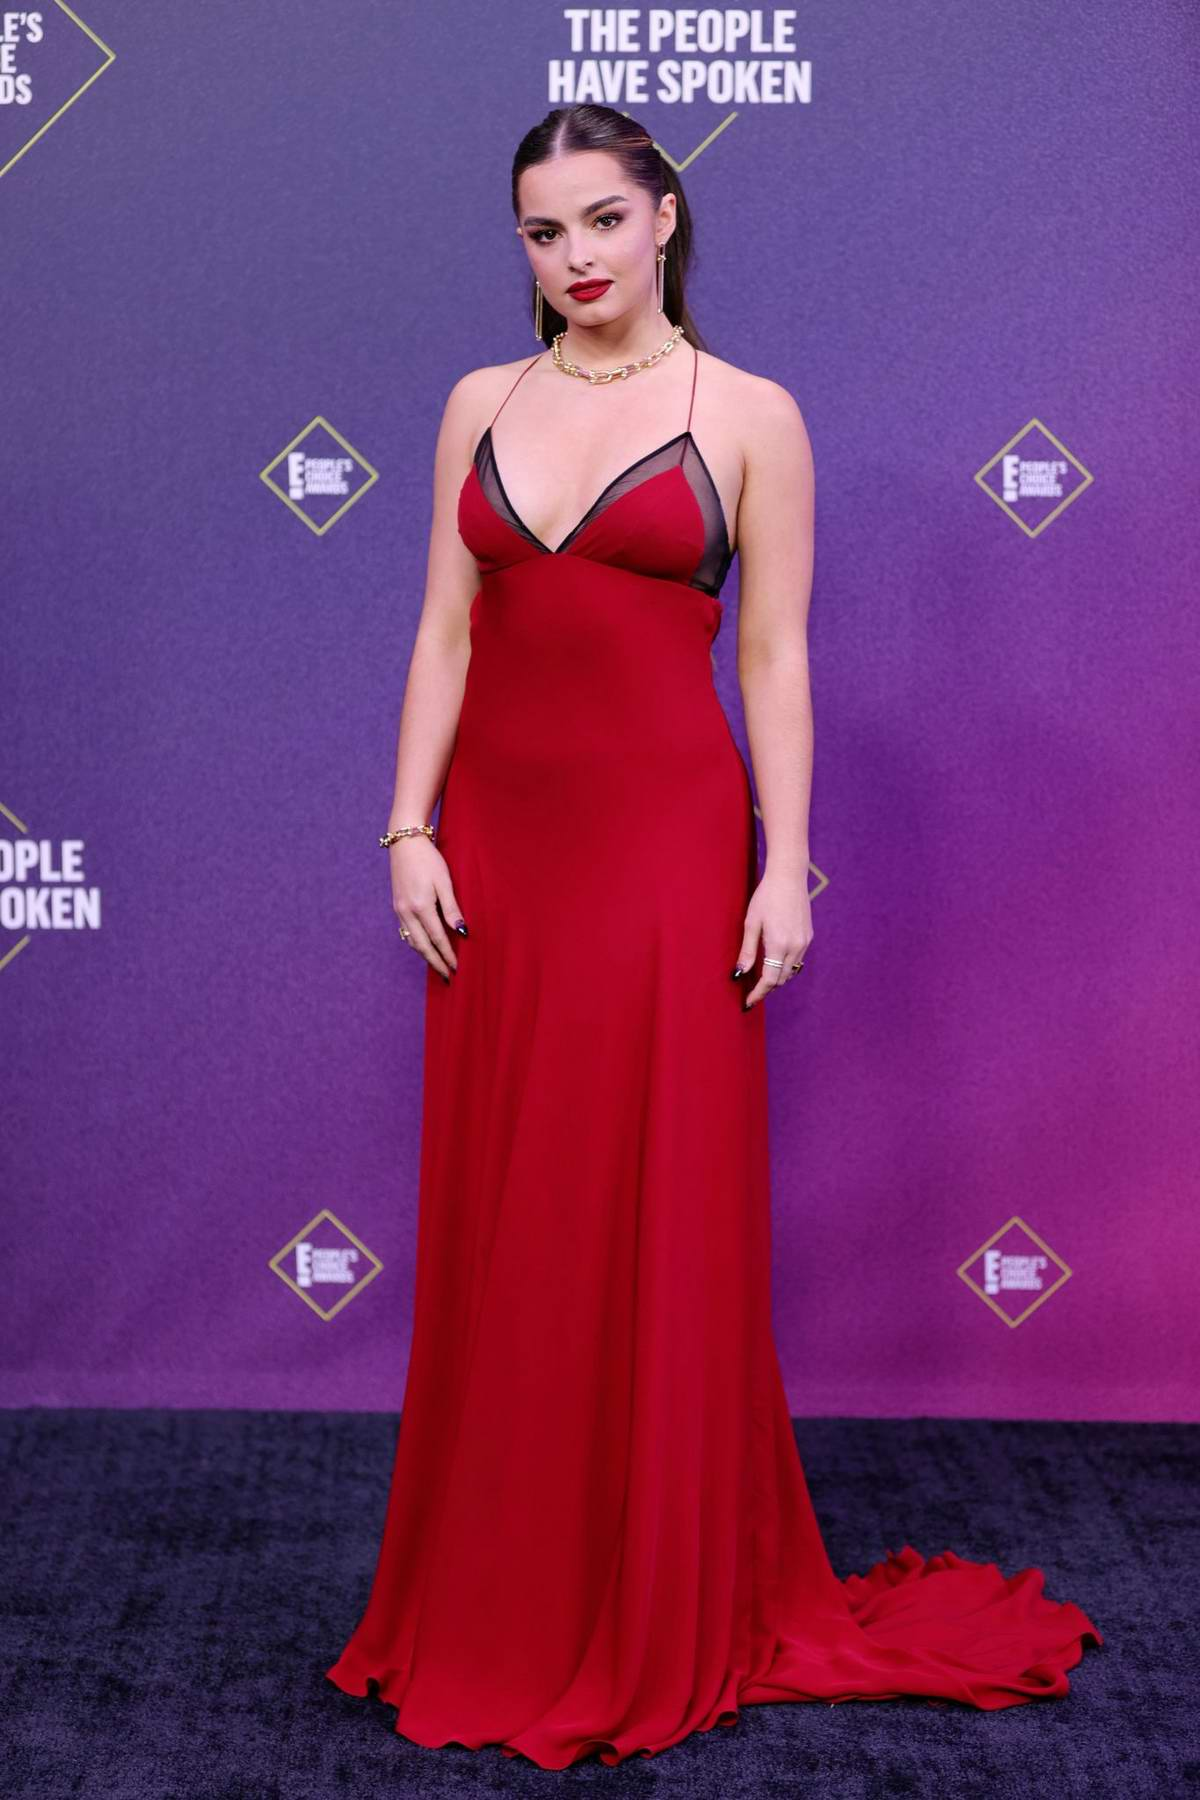 Addison Rae attends the 2020 E! People's Choice Awards at The Barker Hangar in Santa Monica, California